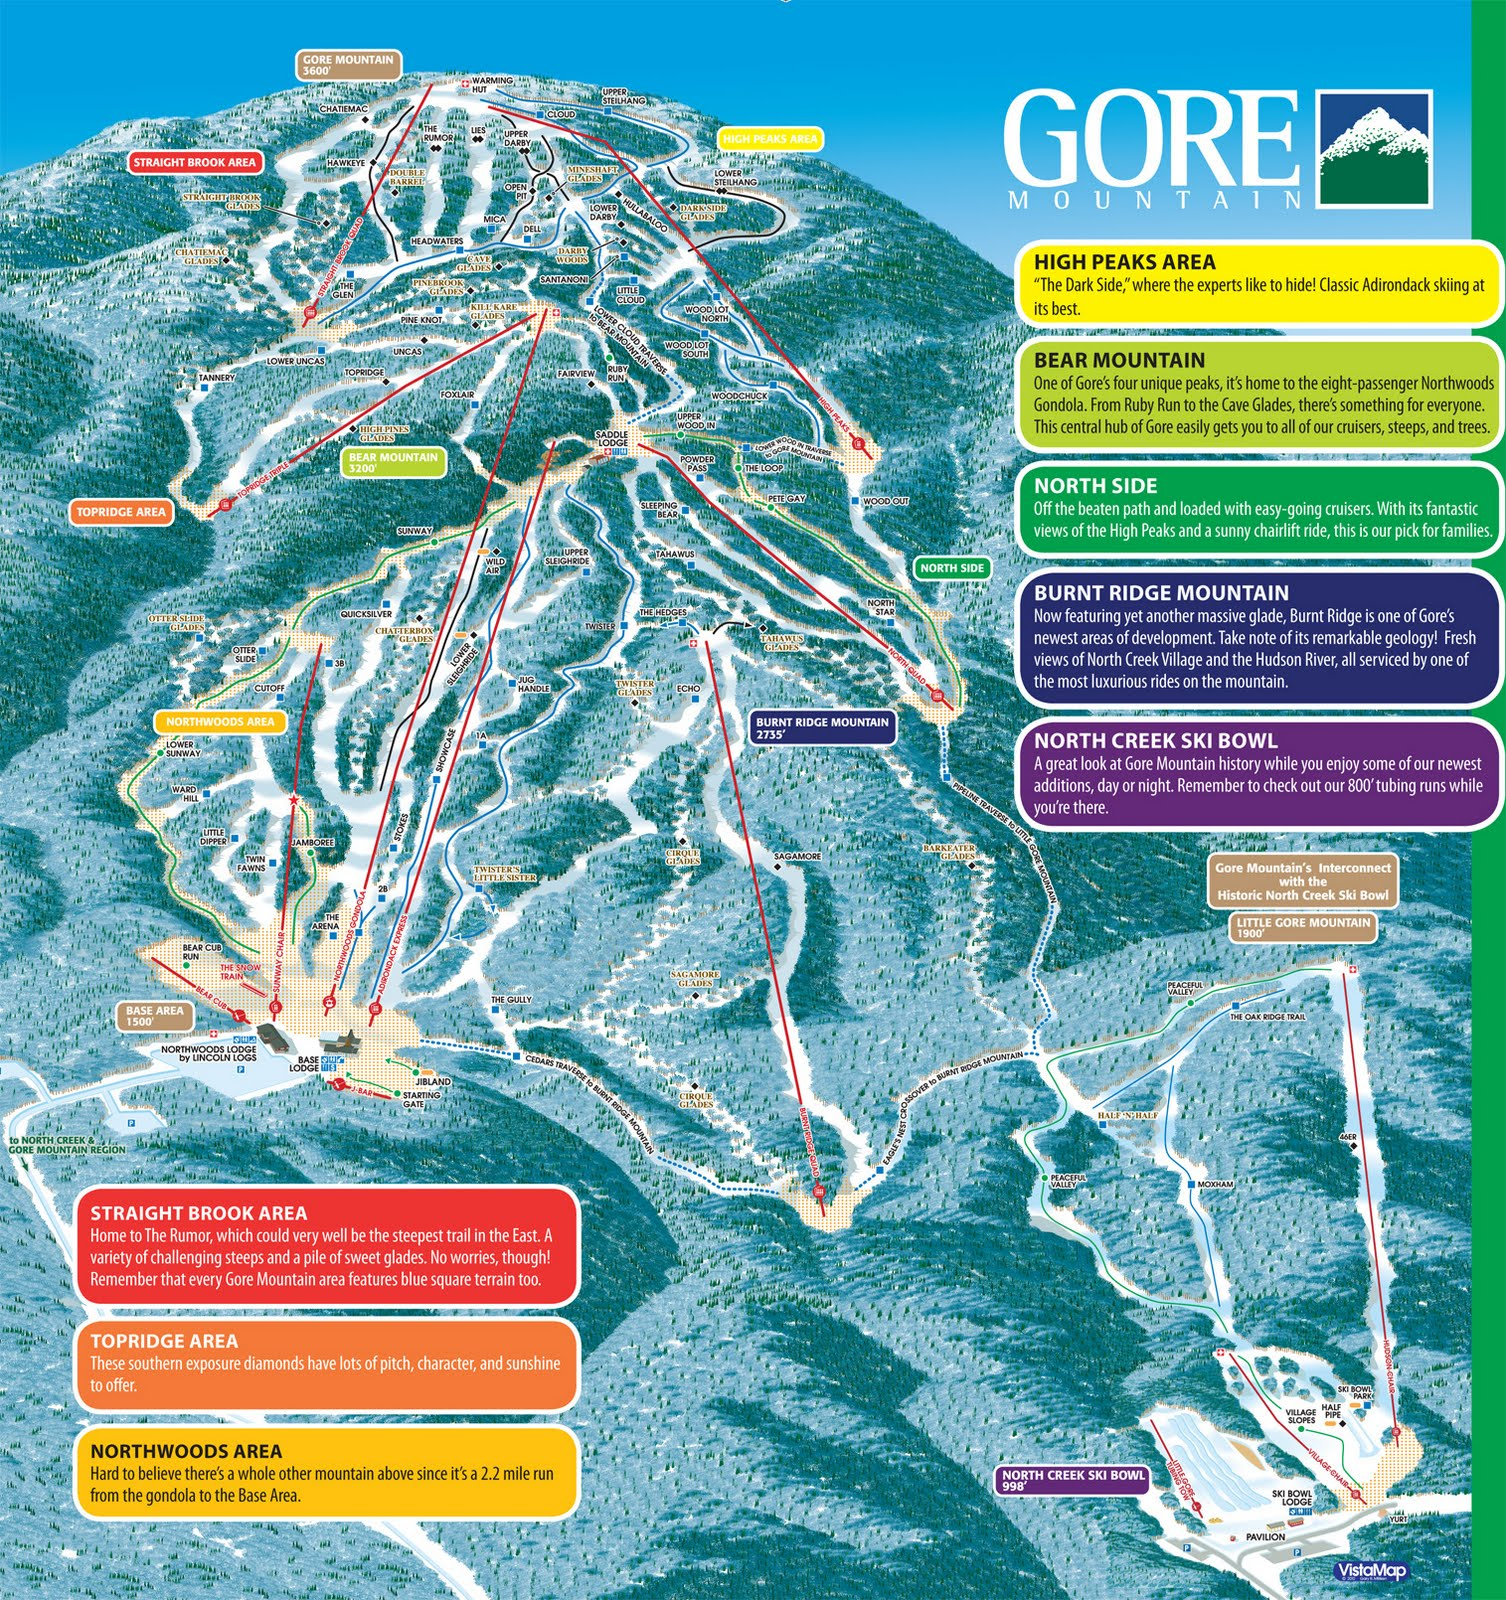 Alpine ski resorts plagued by lack of snow - Gore Mountain Interconnect Whiteface Troubles By Editorial Staff